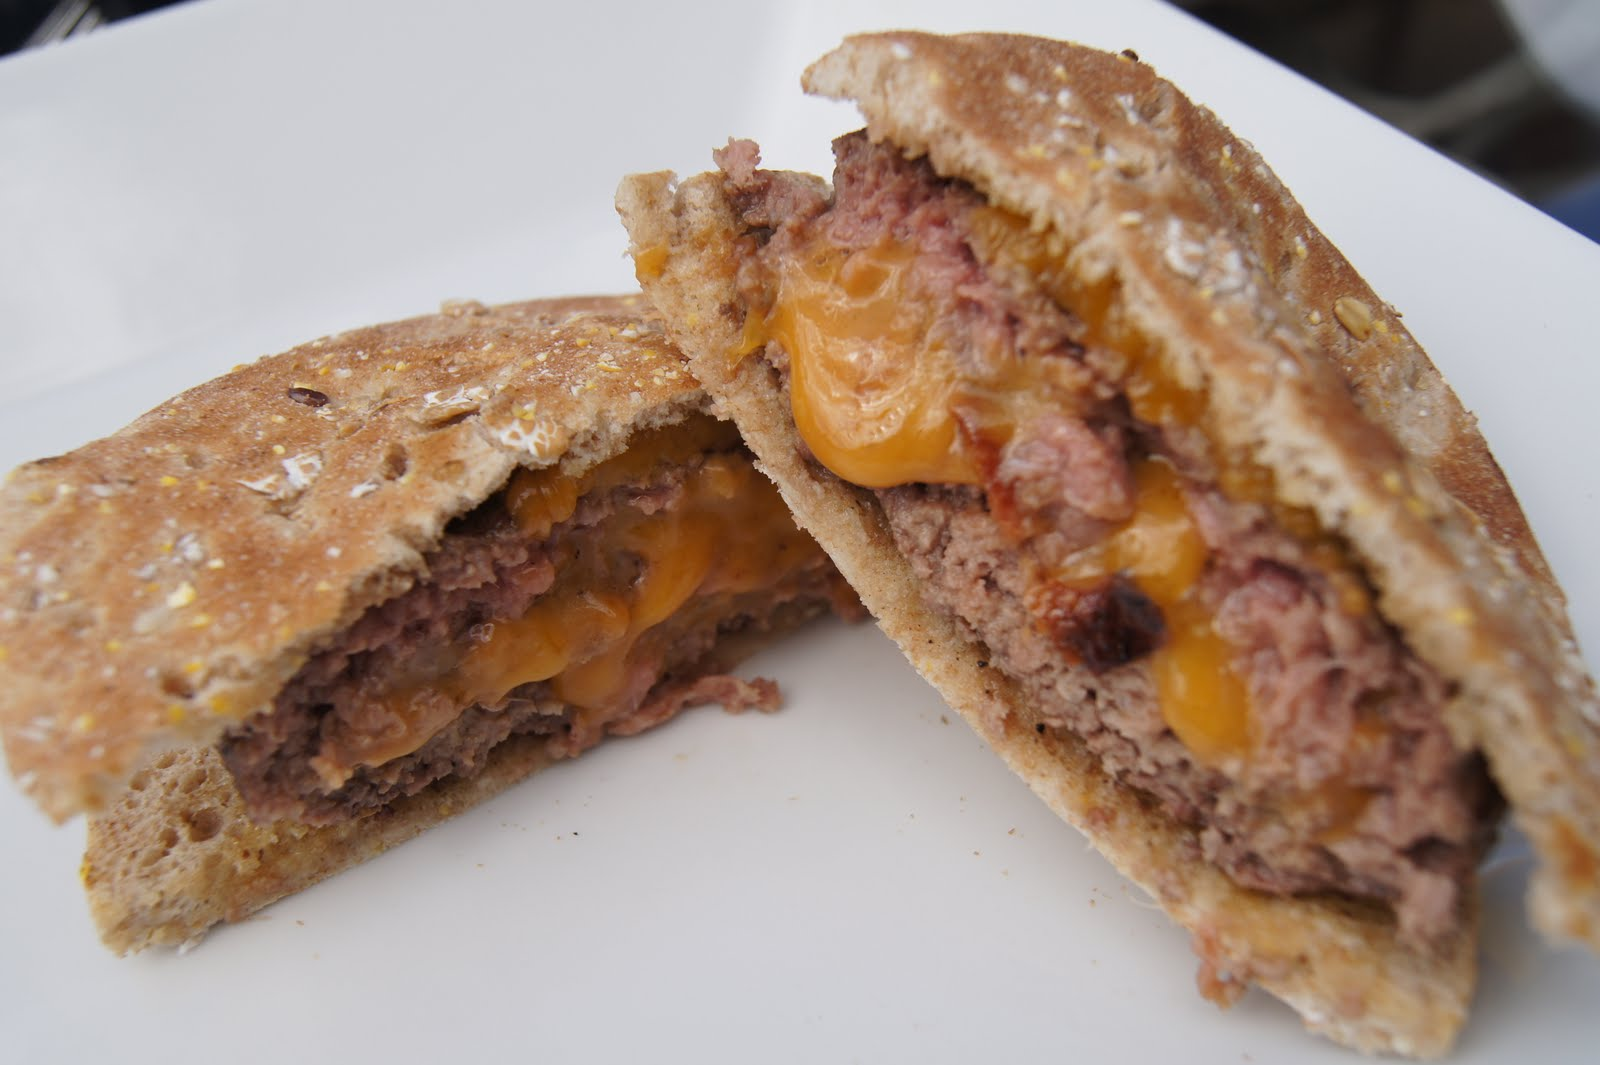 Bacon Cheddar Stuffed Burgers